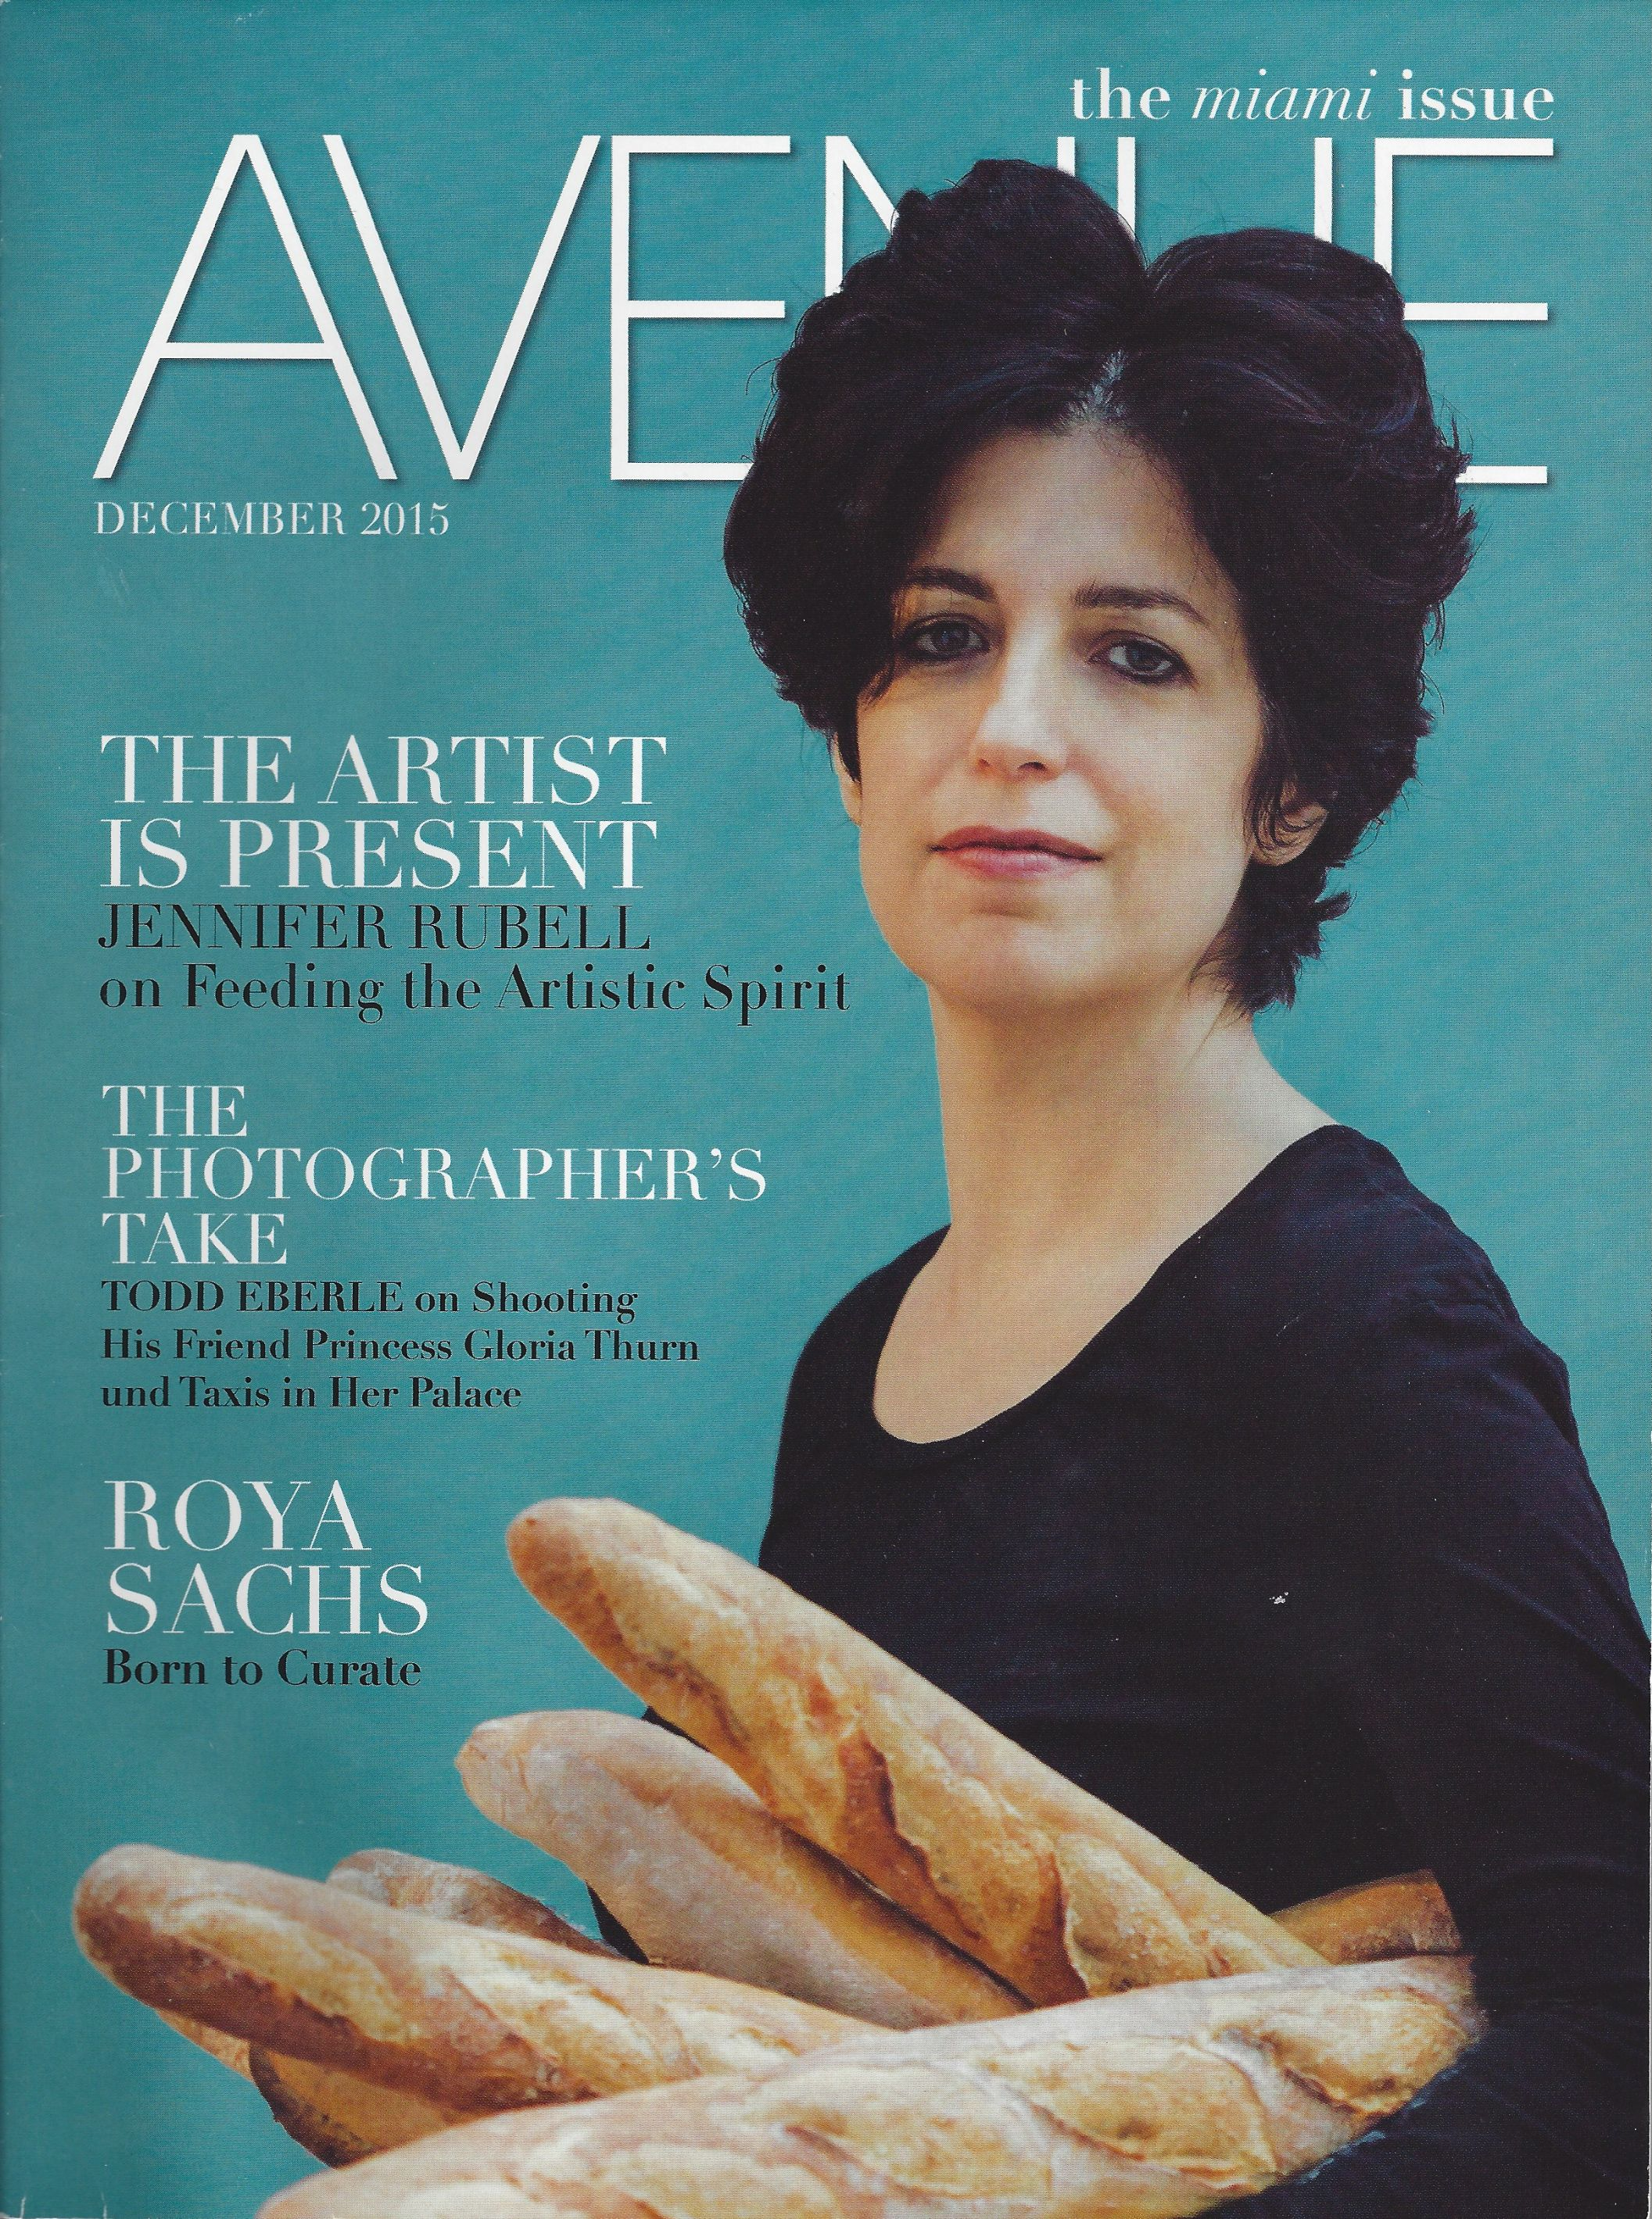 Avenue - The Miami Issue